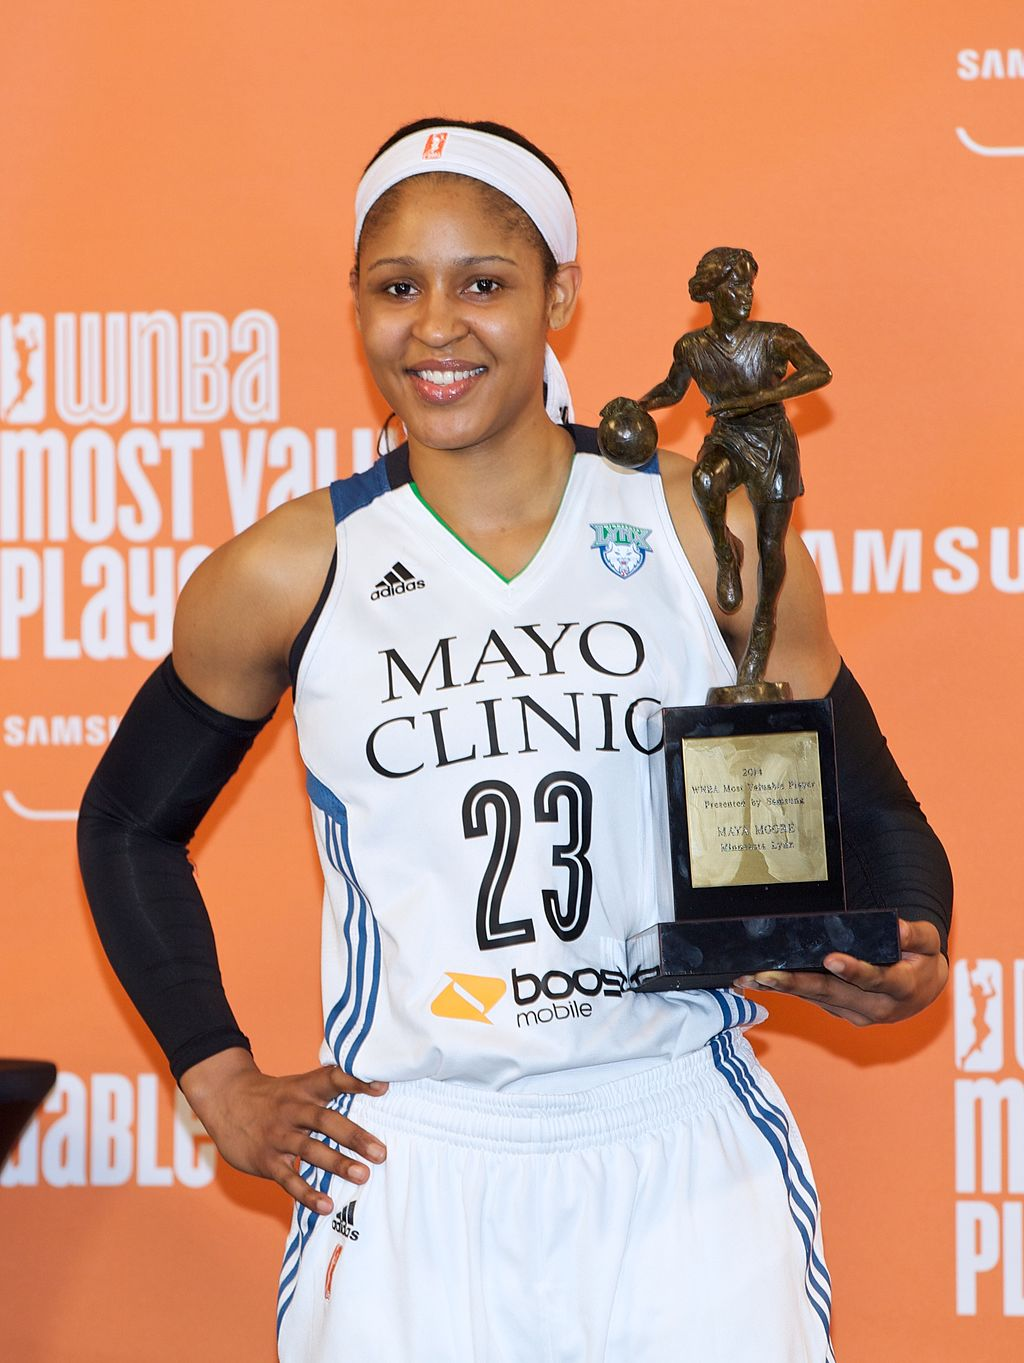 Maya Moore, a player for the Minnesota Lynx winning theMost Valuable Player in the history of the franchise onMay 19, 2016 | Photo: Wikipedia/Naemajano/Maya Moore with her 2014 MVP trophy/CC BY-SA 4.0